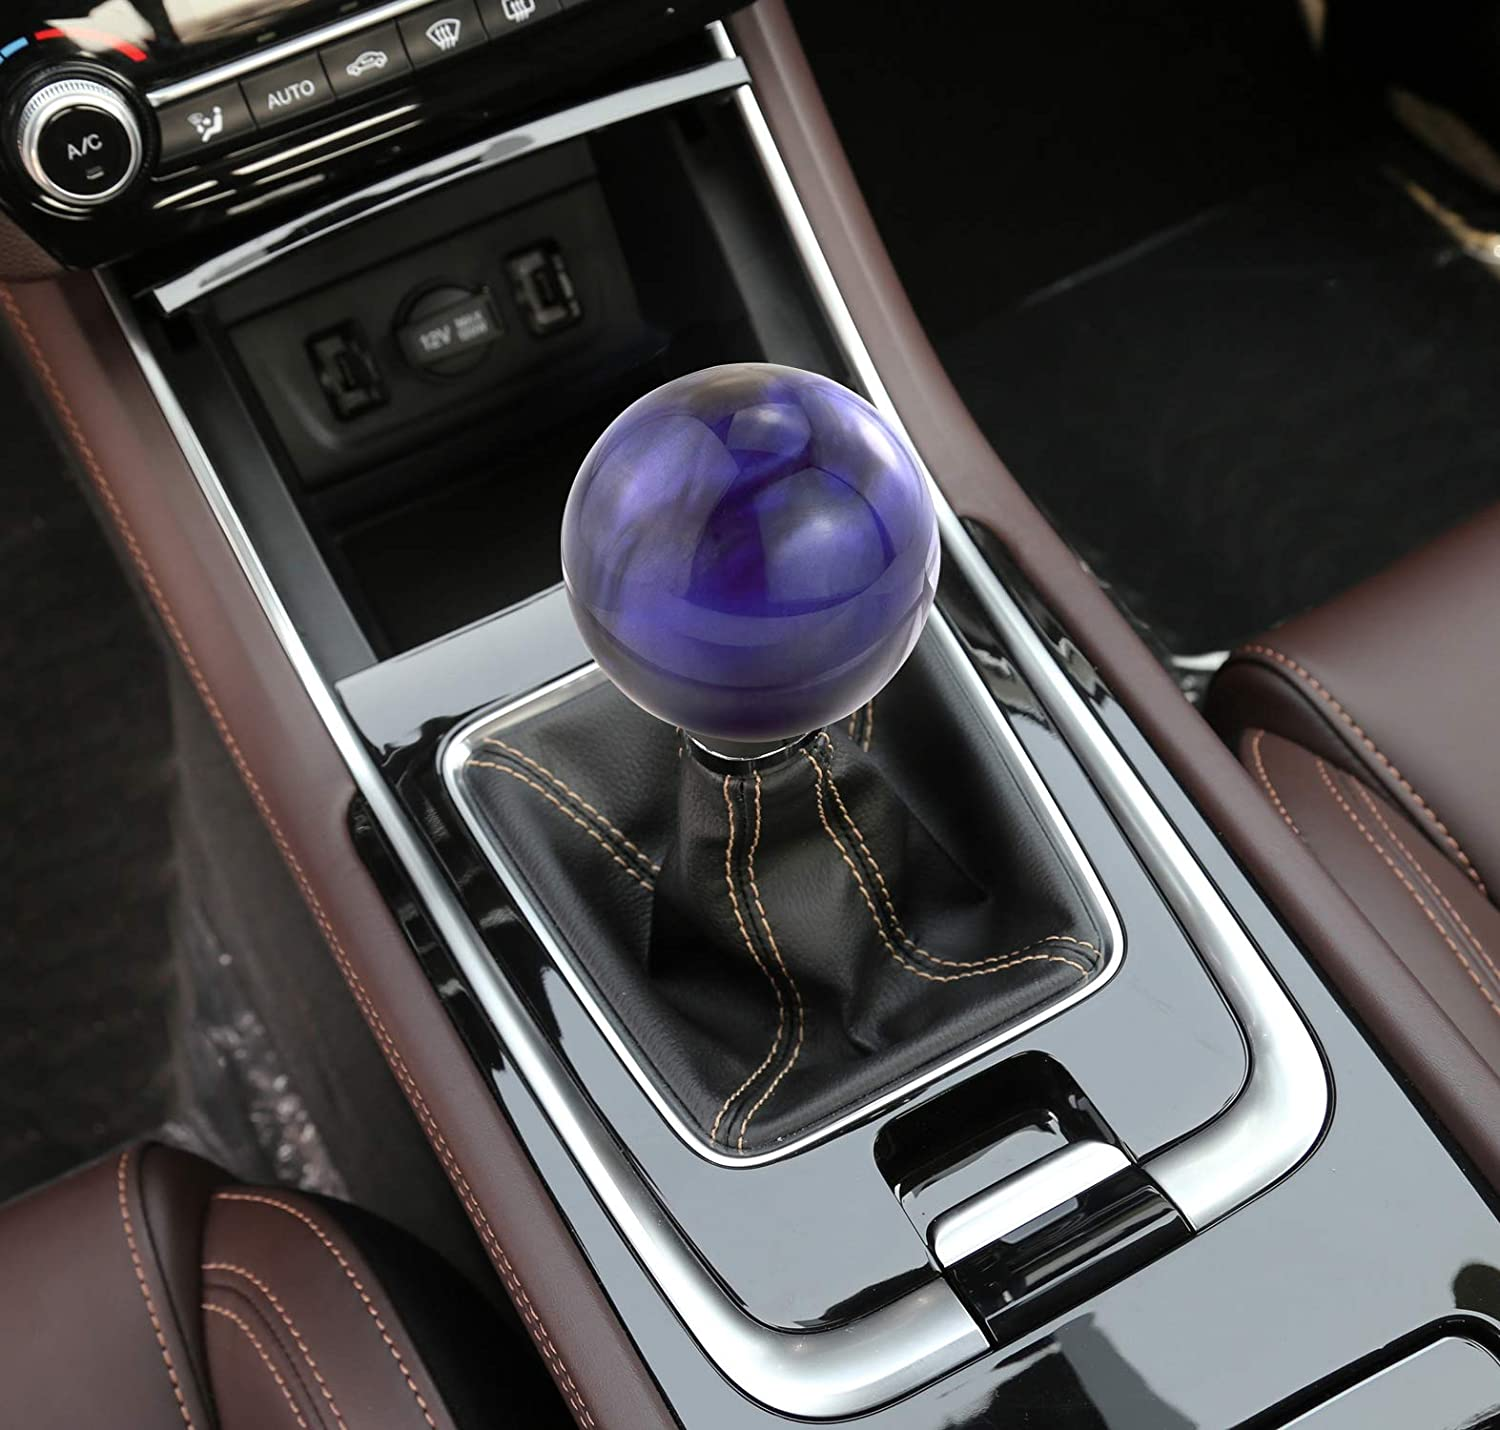 Gray Abfer Ball Shift Knob Car Gear Stick Shifter Knobs Shifting Lever Replacement Fit Universal Automatic Manual Transmission Vehicles